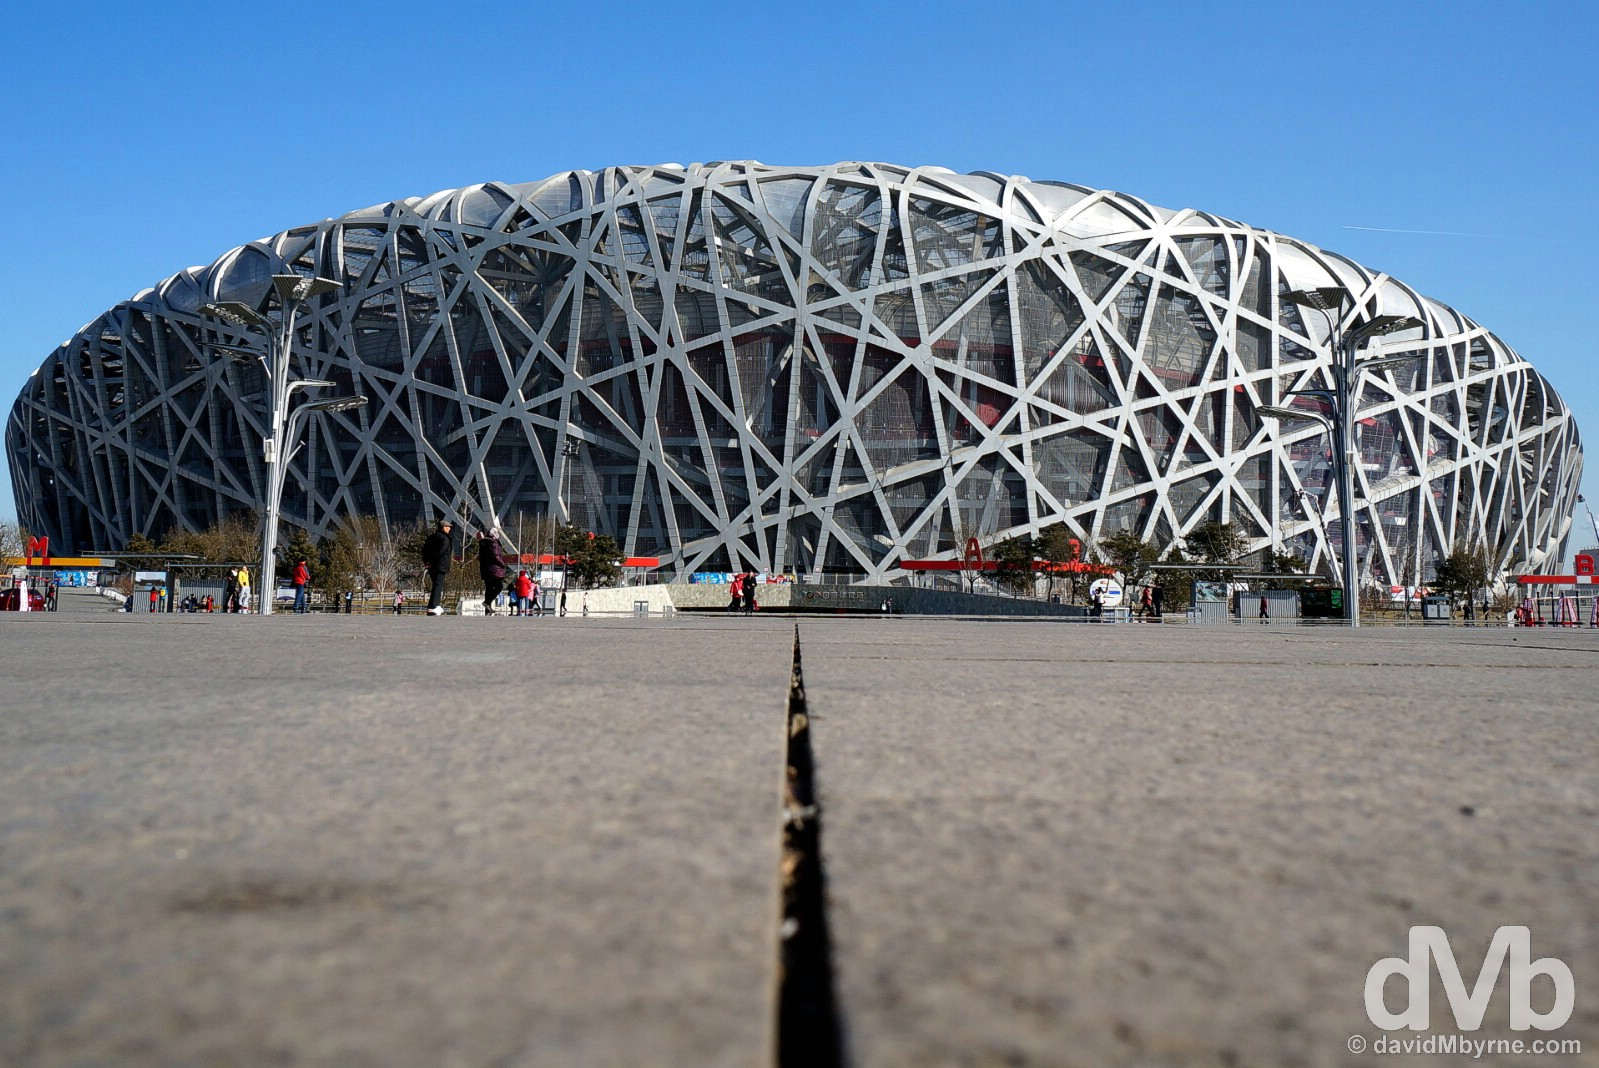 The National Stadium, a.k.a. the Bird's Nest, in Beijing Olympic Park, Beijing, China. February 5, 2015.